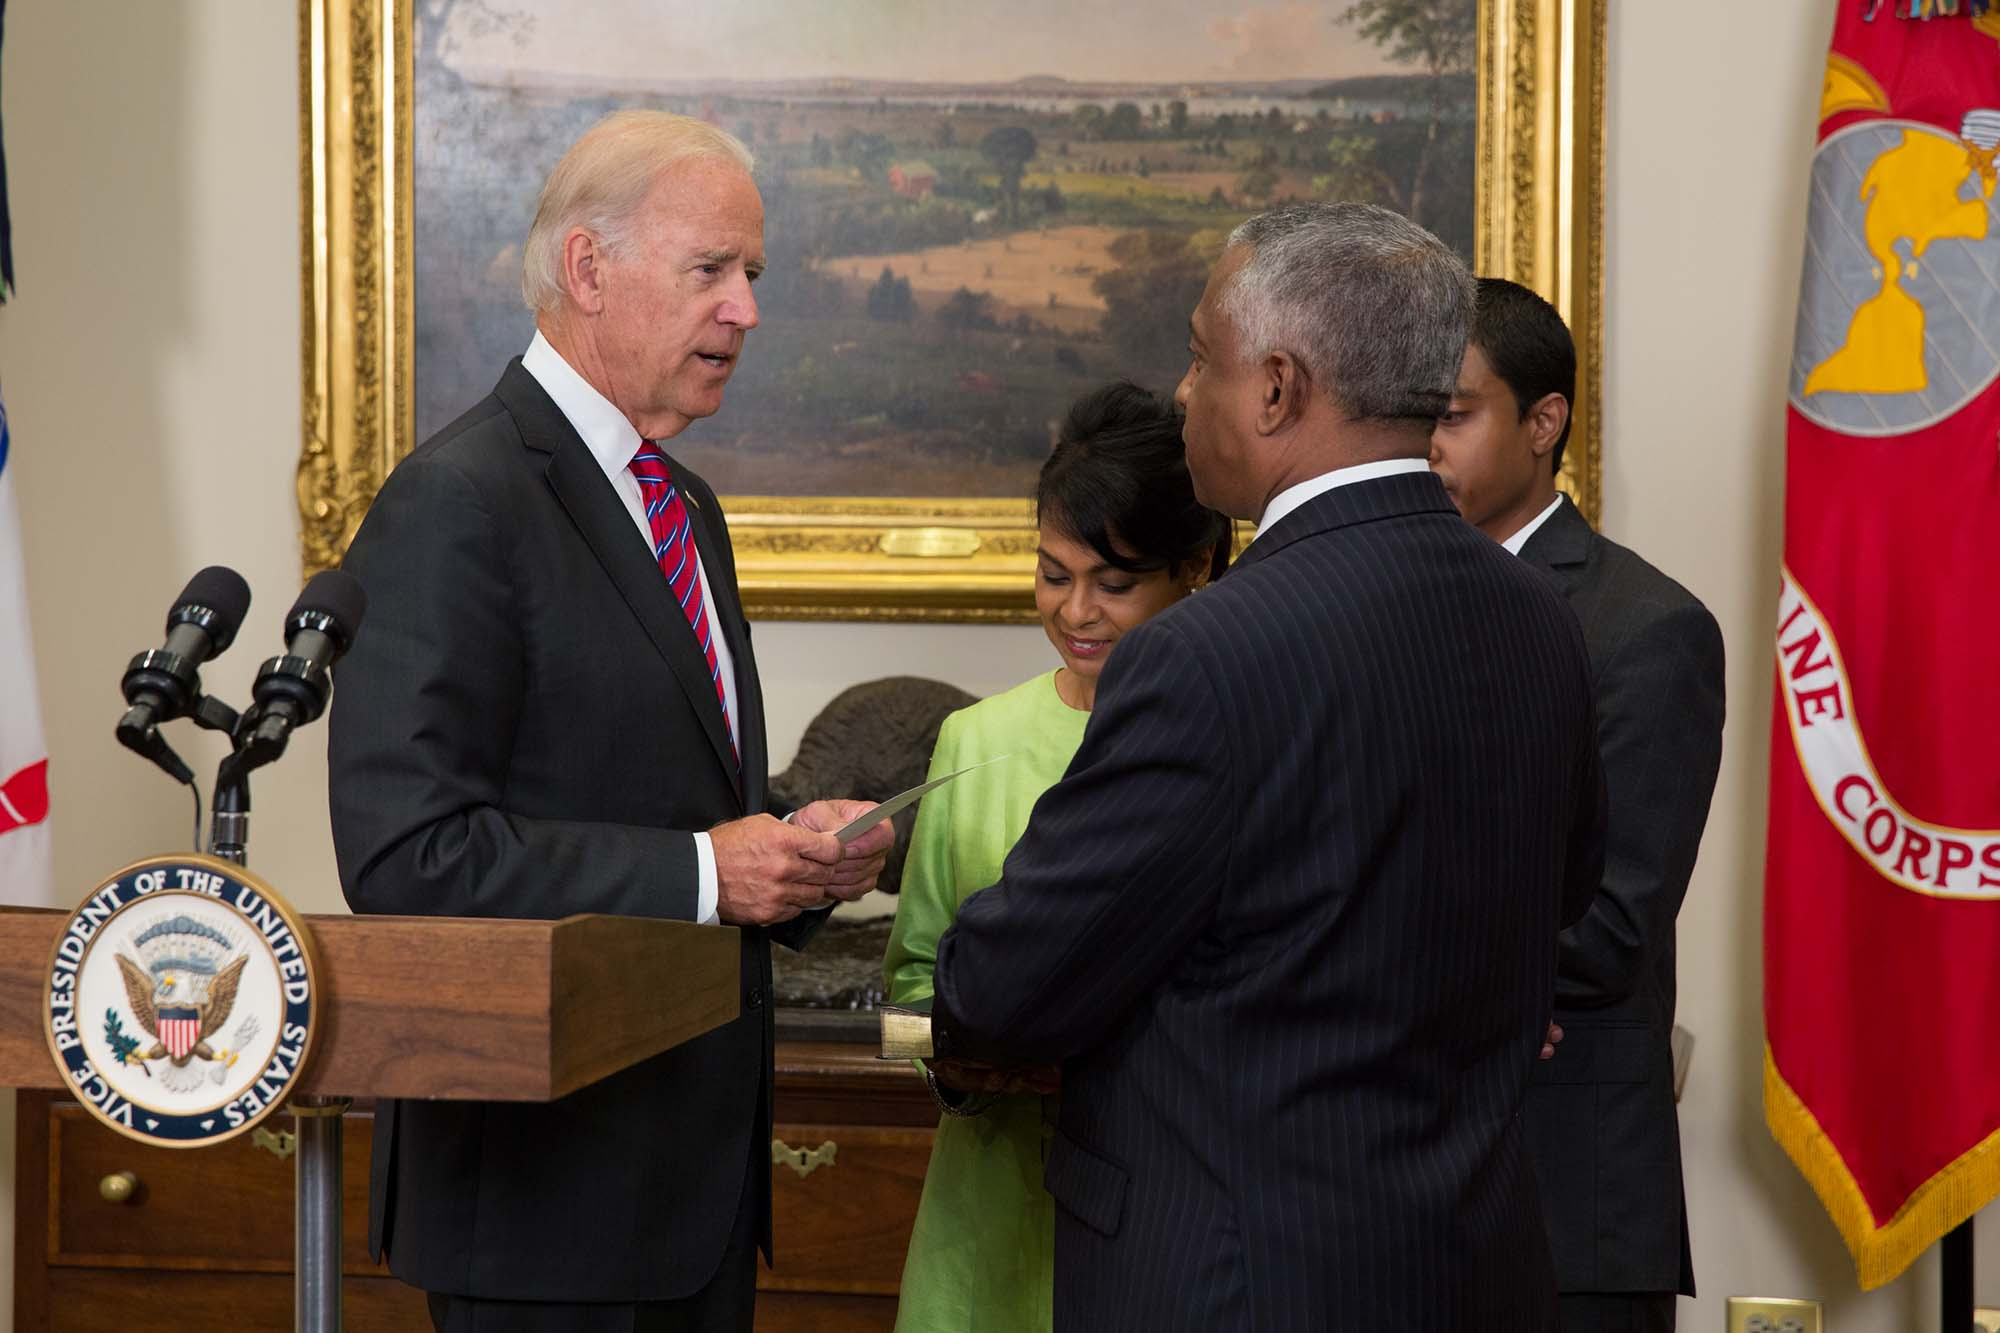 Vice President Joe Biden ceremonially swears in Todd Jones as Director of the Bureau of Alcohol, Tobacco, Firearms and Explosives